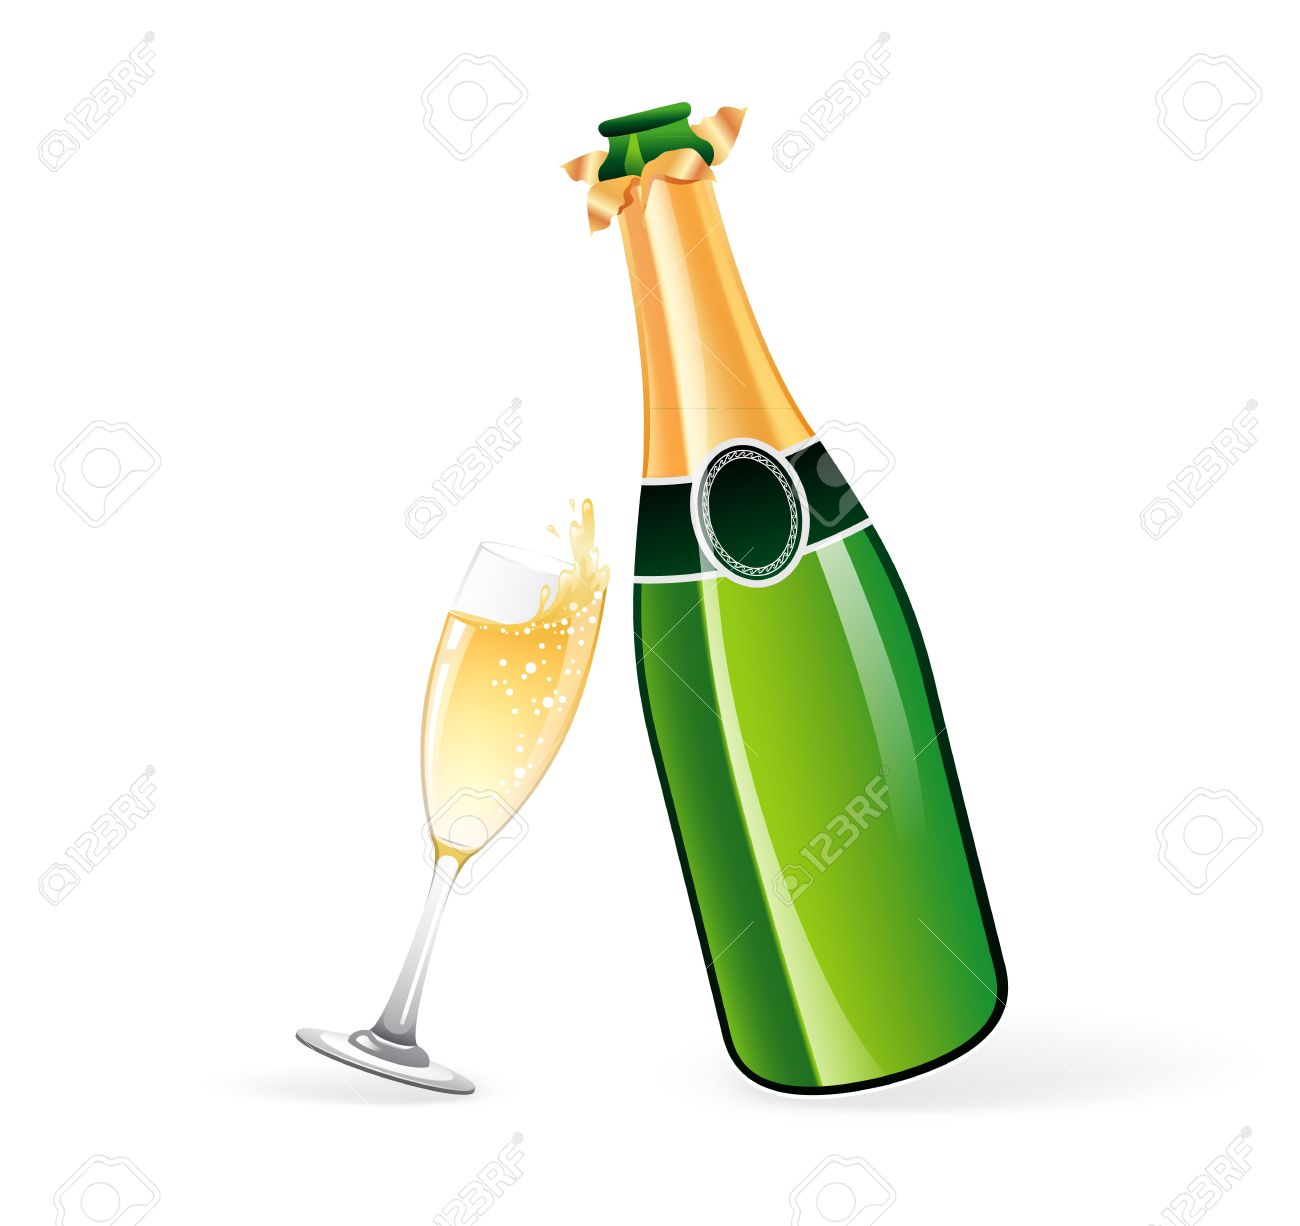 champagne bottle and glasses clipart clipart station rh clipartstation com champagne clip art black and white image clipart champagne